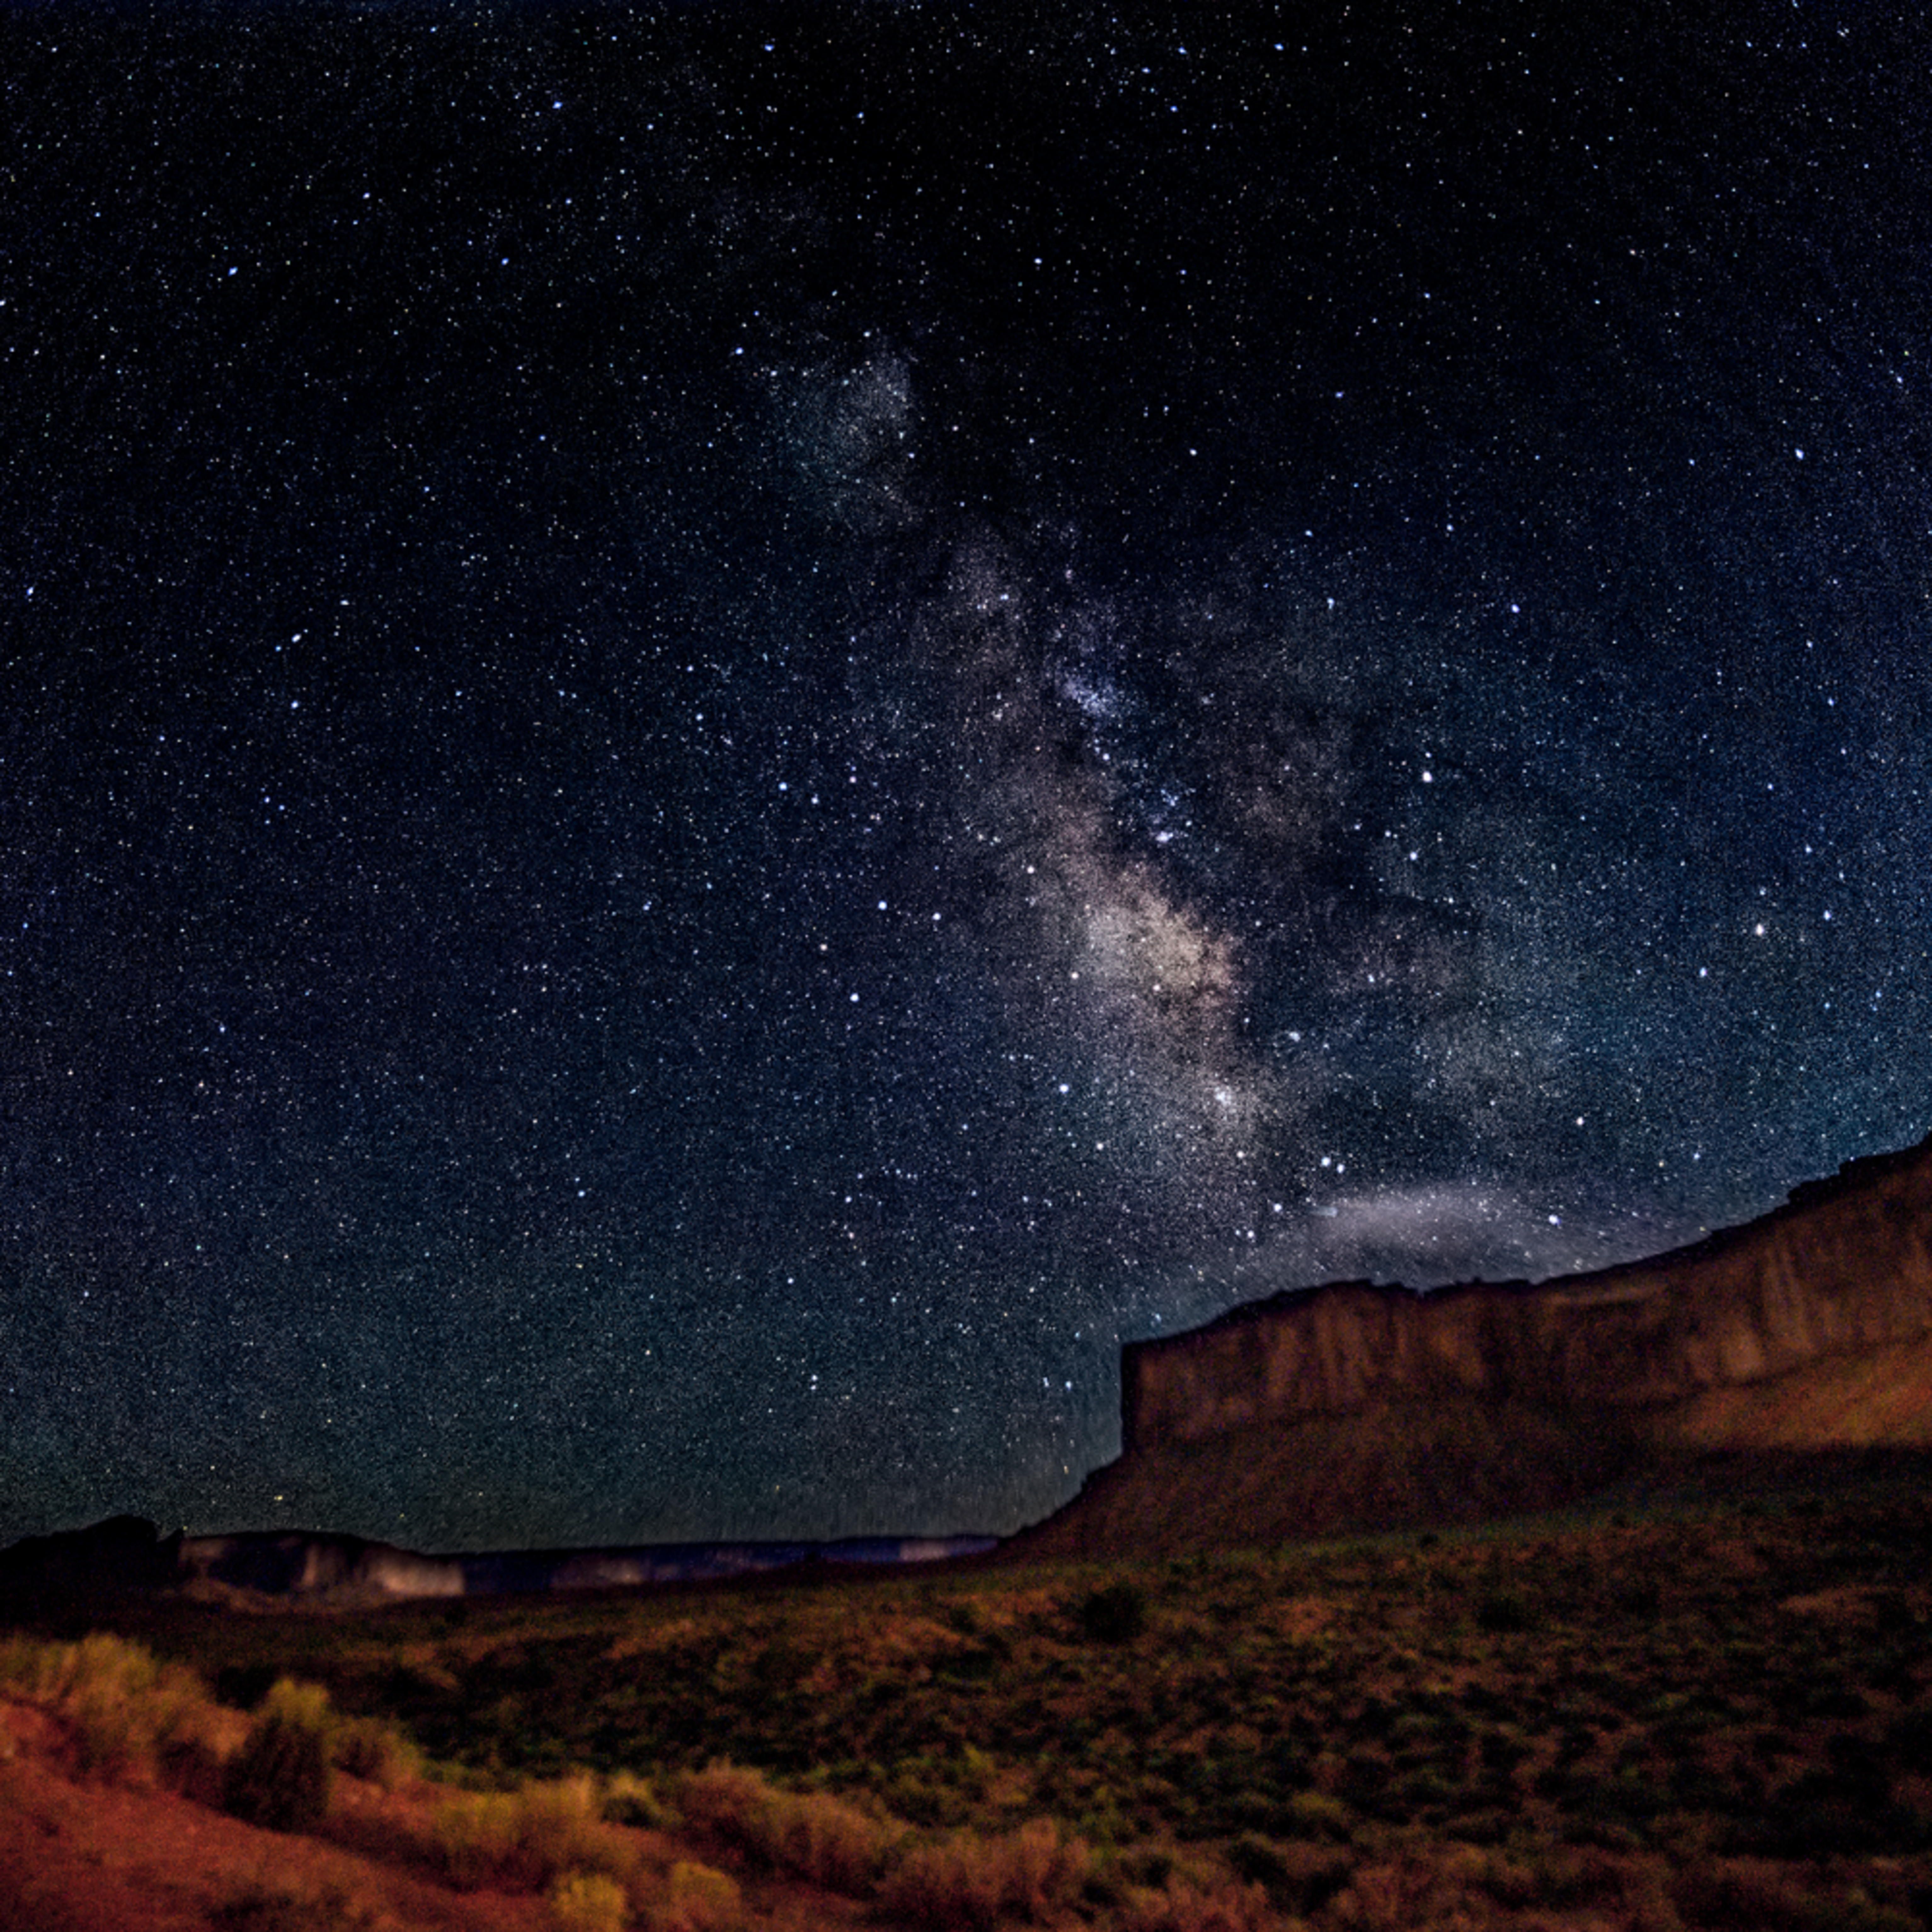 Milky way over monument valley zguttr